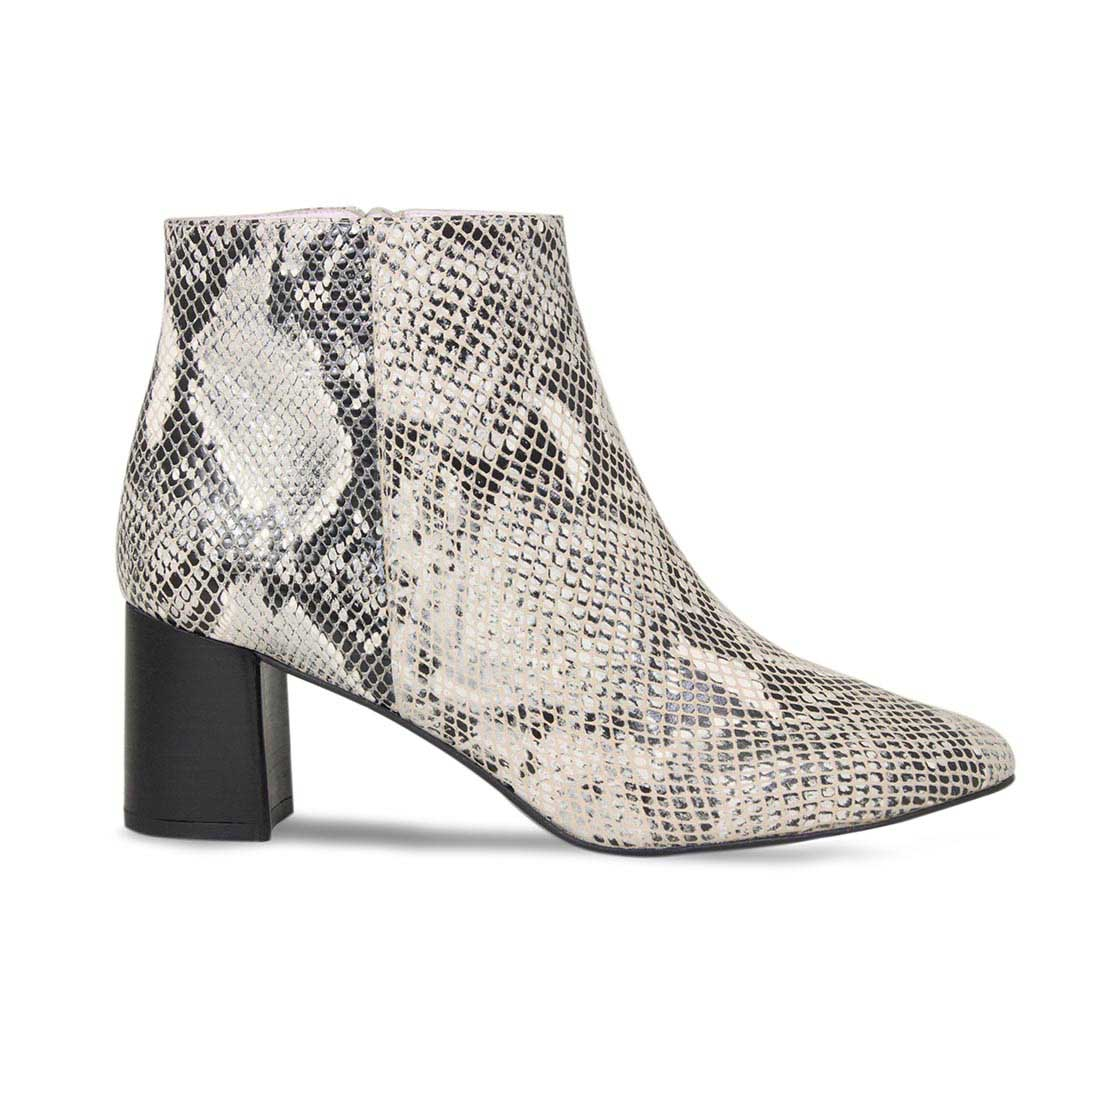 Gray Snake Print Leather Block Heel Ankle Boots